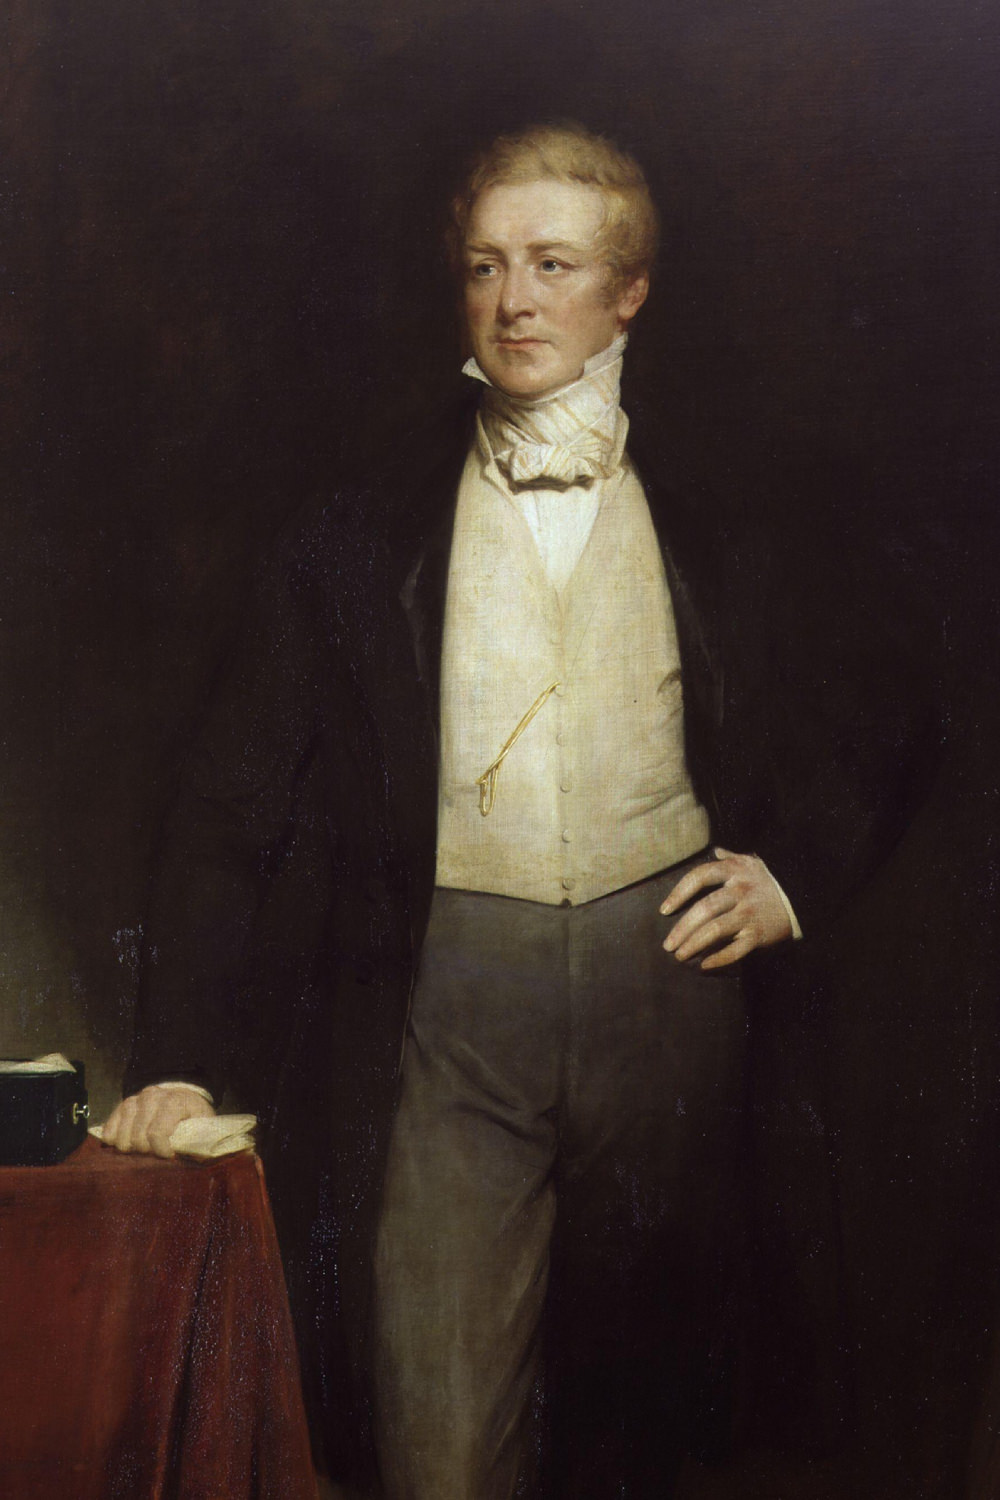 Sir Robert Peel (1788-1850)